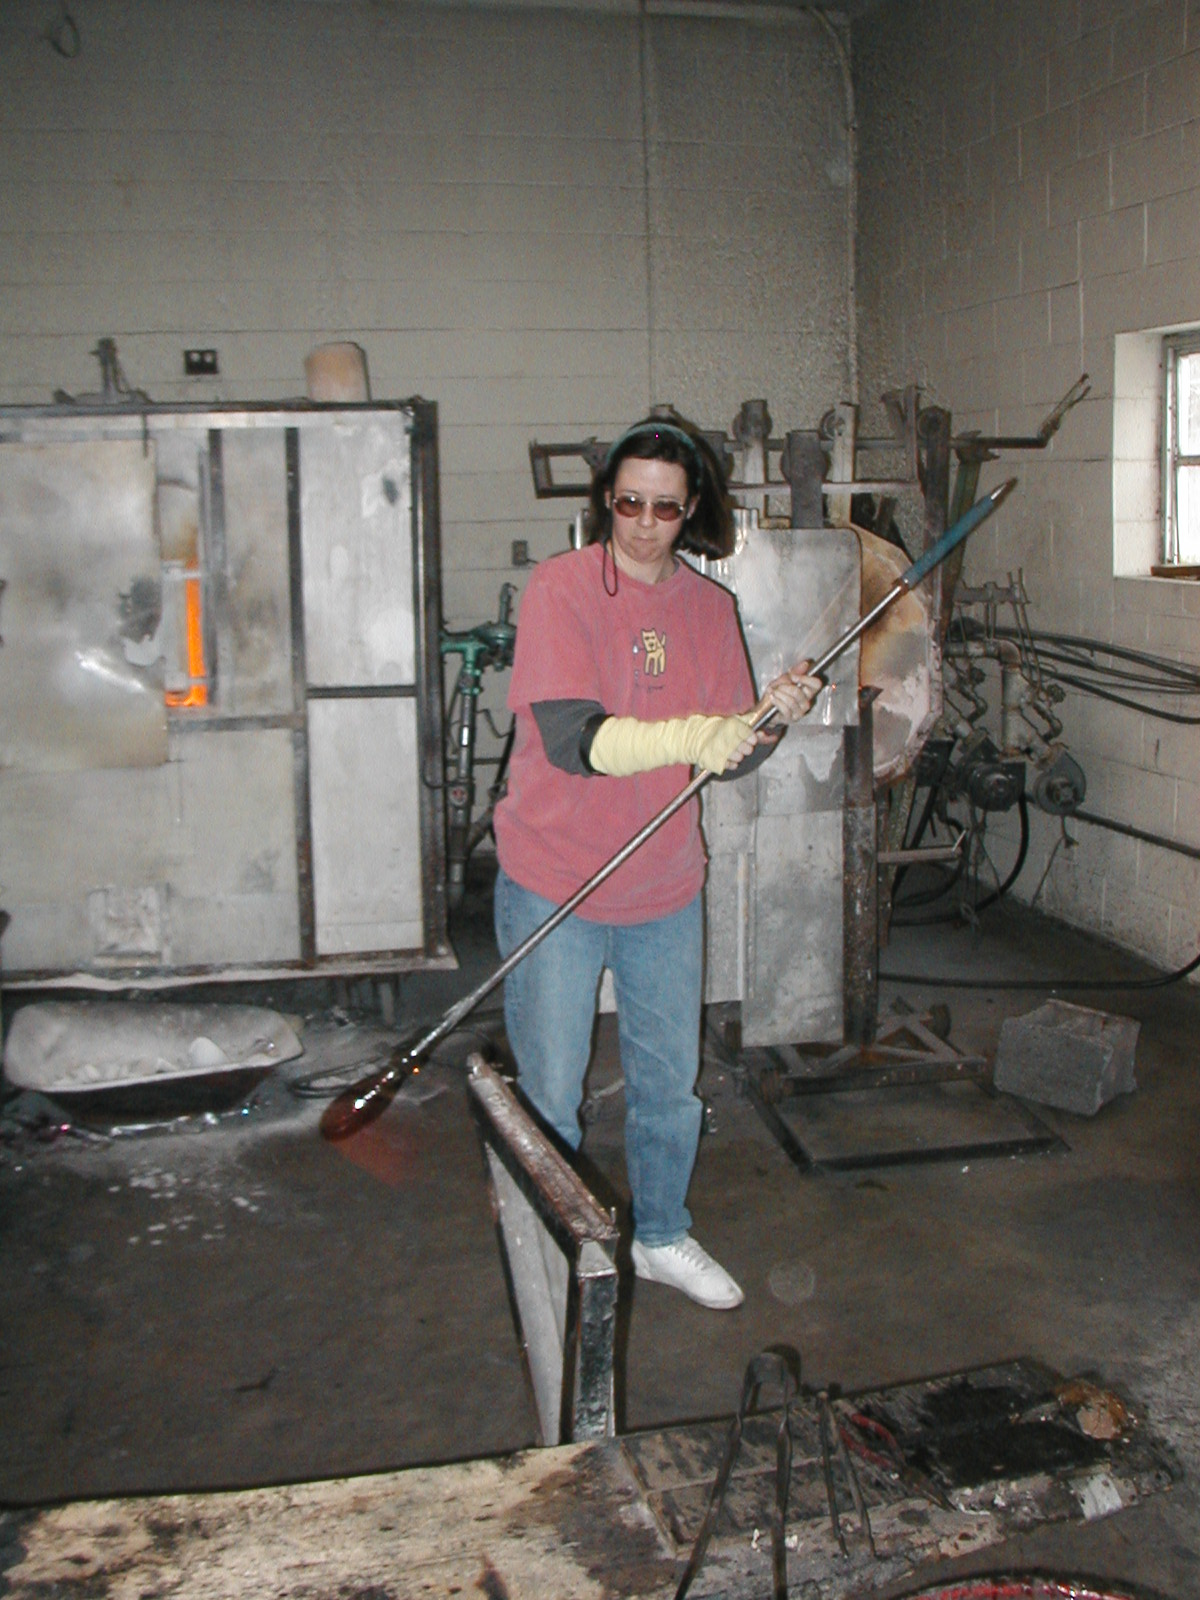 Glassblower.Info - Joel Bless Glasslight Glassblowing class January 18 2004 #010